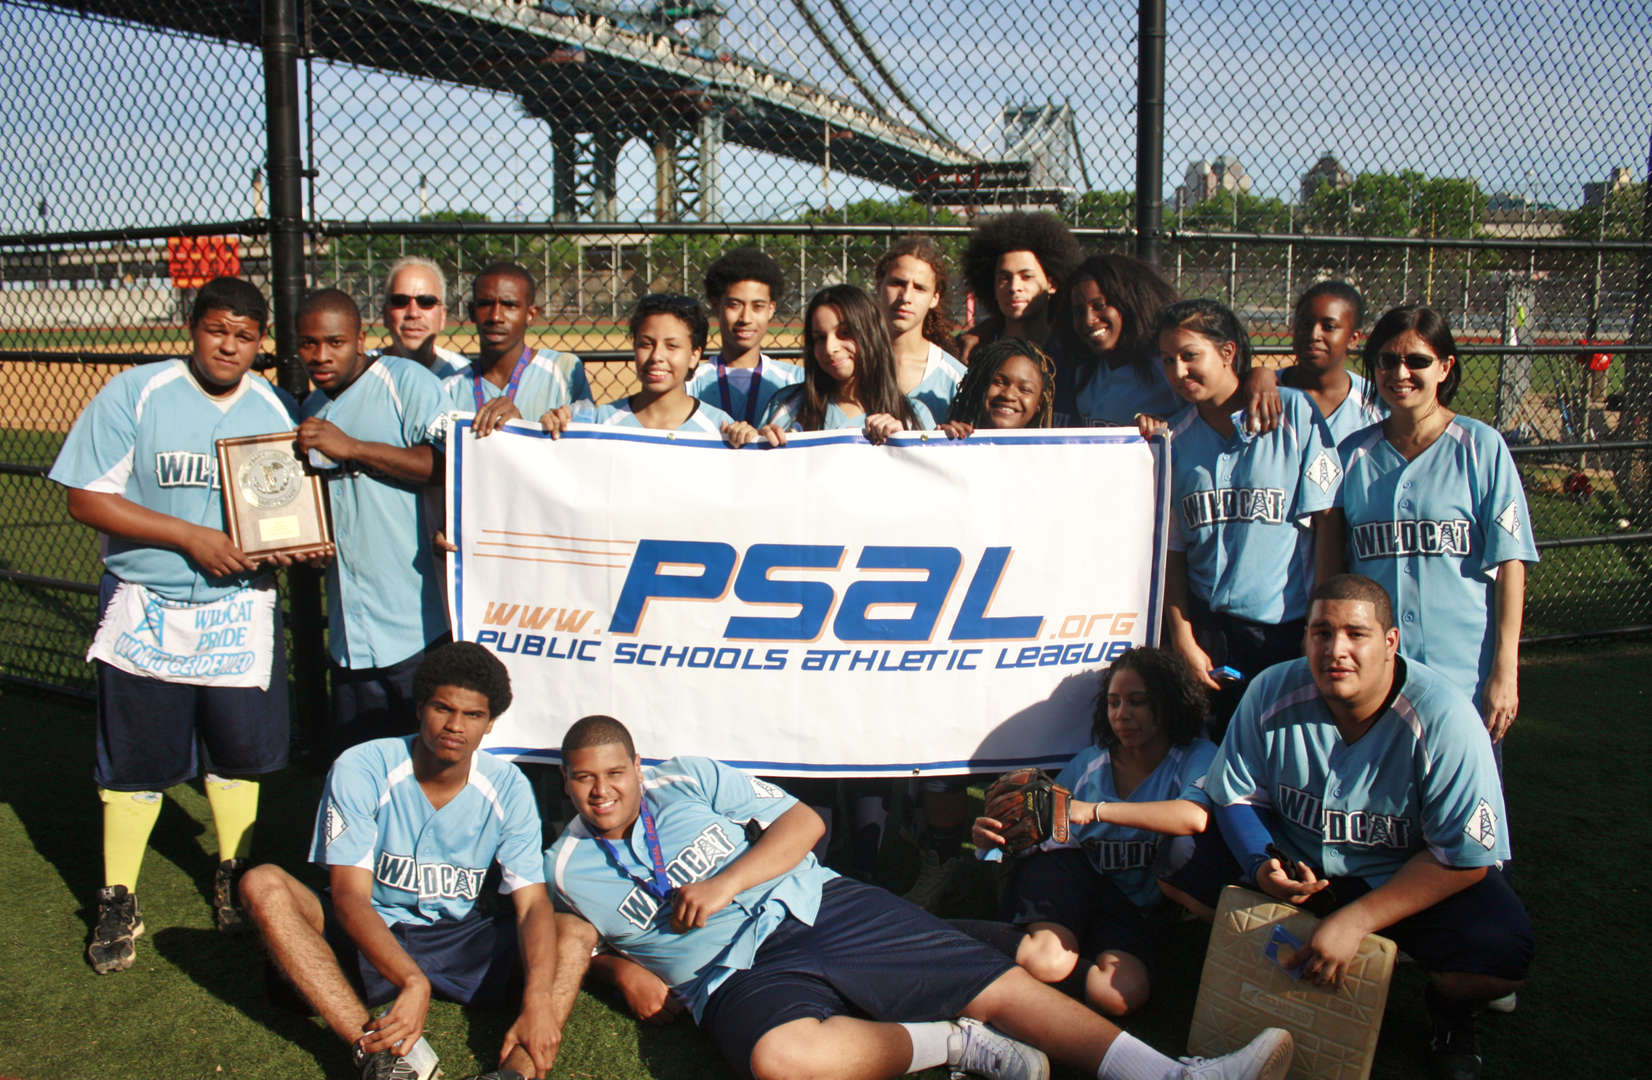 2012-2013 PSAL Coed Softball Champions (back to back undefeated season)